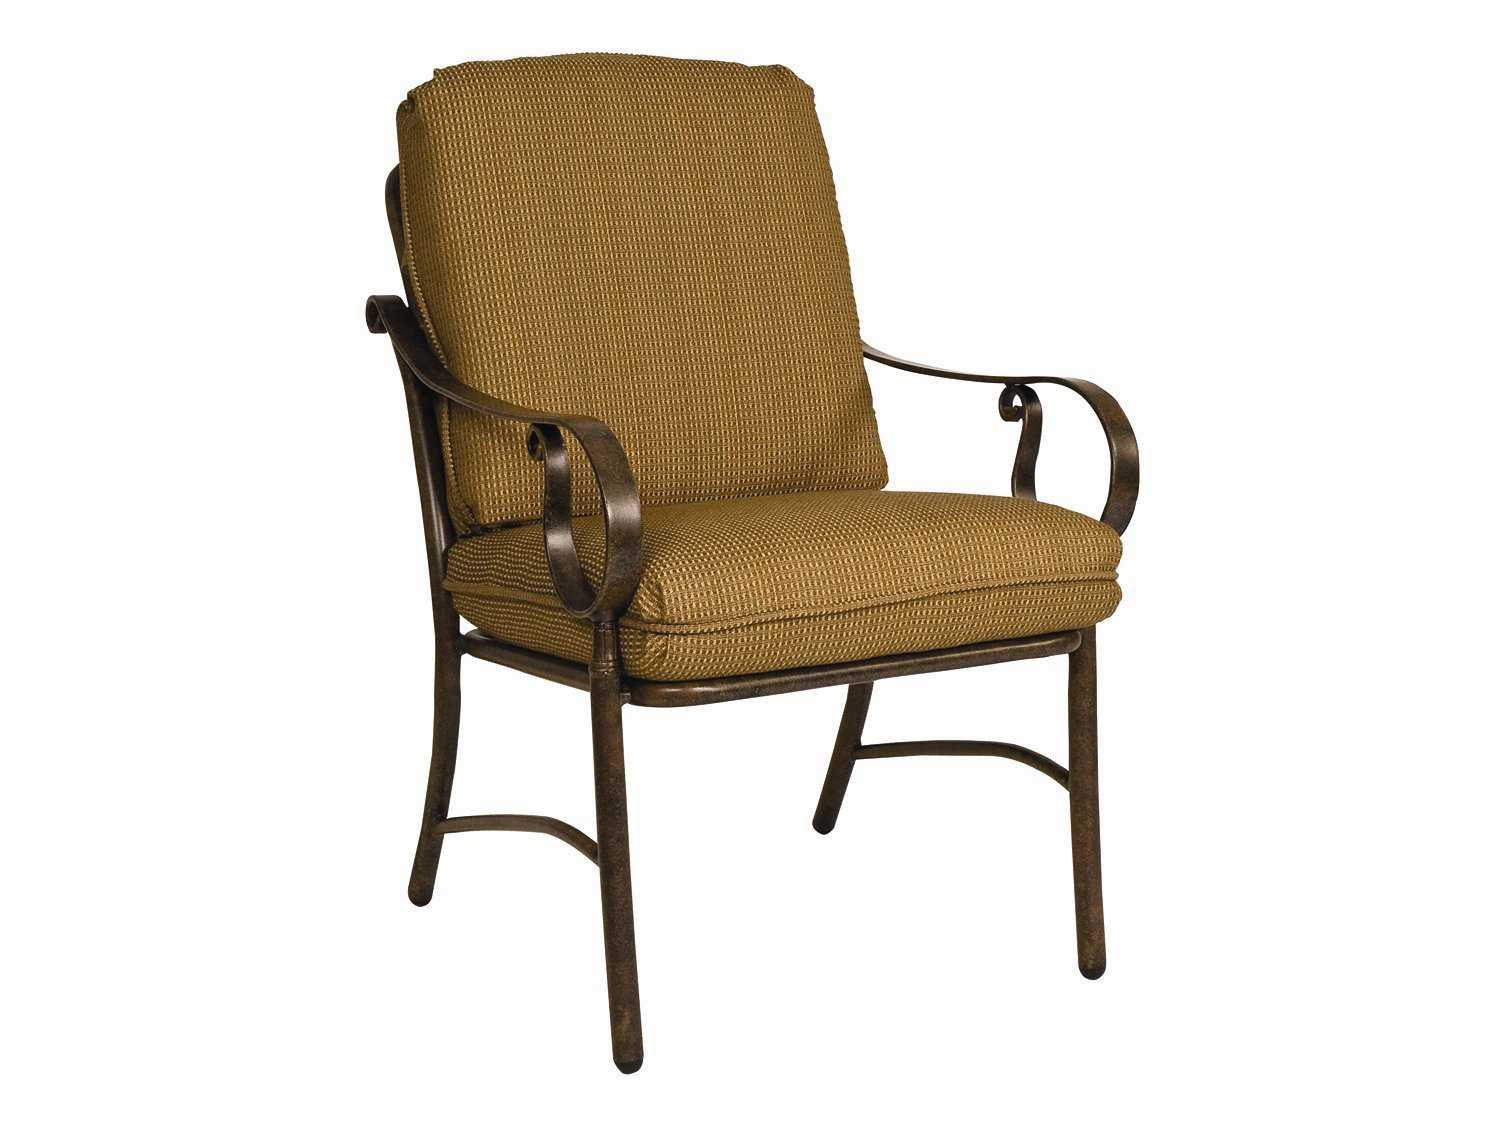 Replacement Cushions For Patio Chairs Woodard Bungalow Replacement Chair Seat And Back Patio